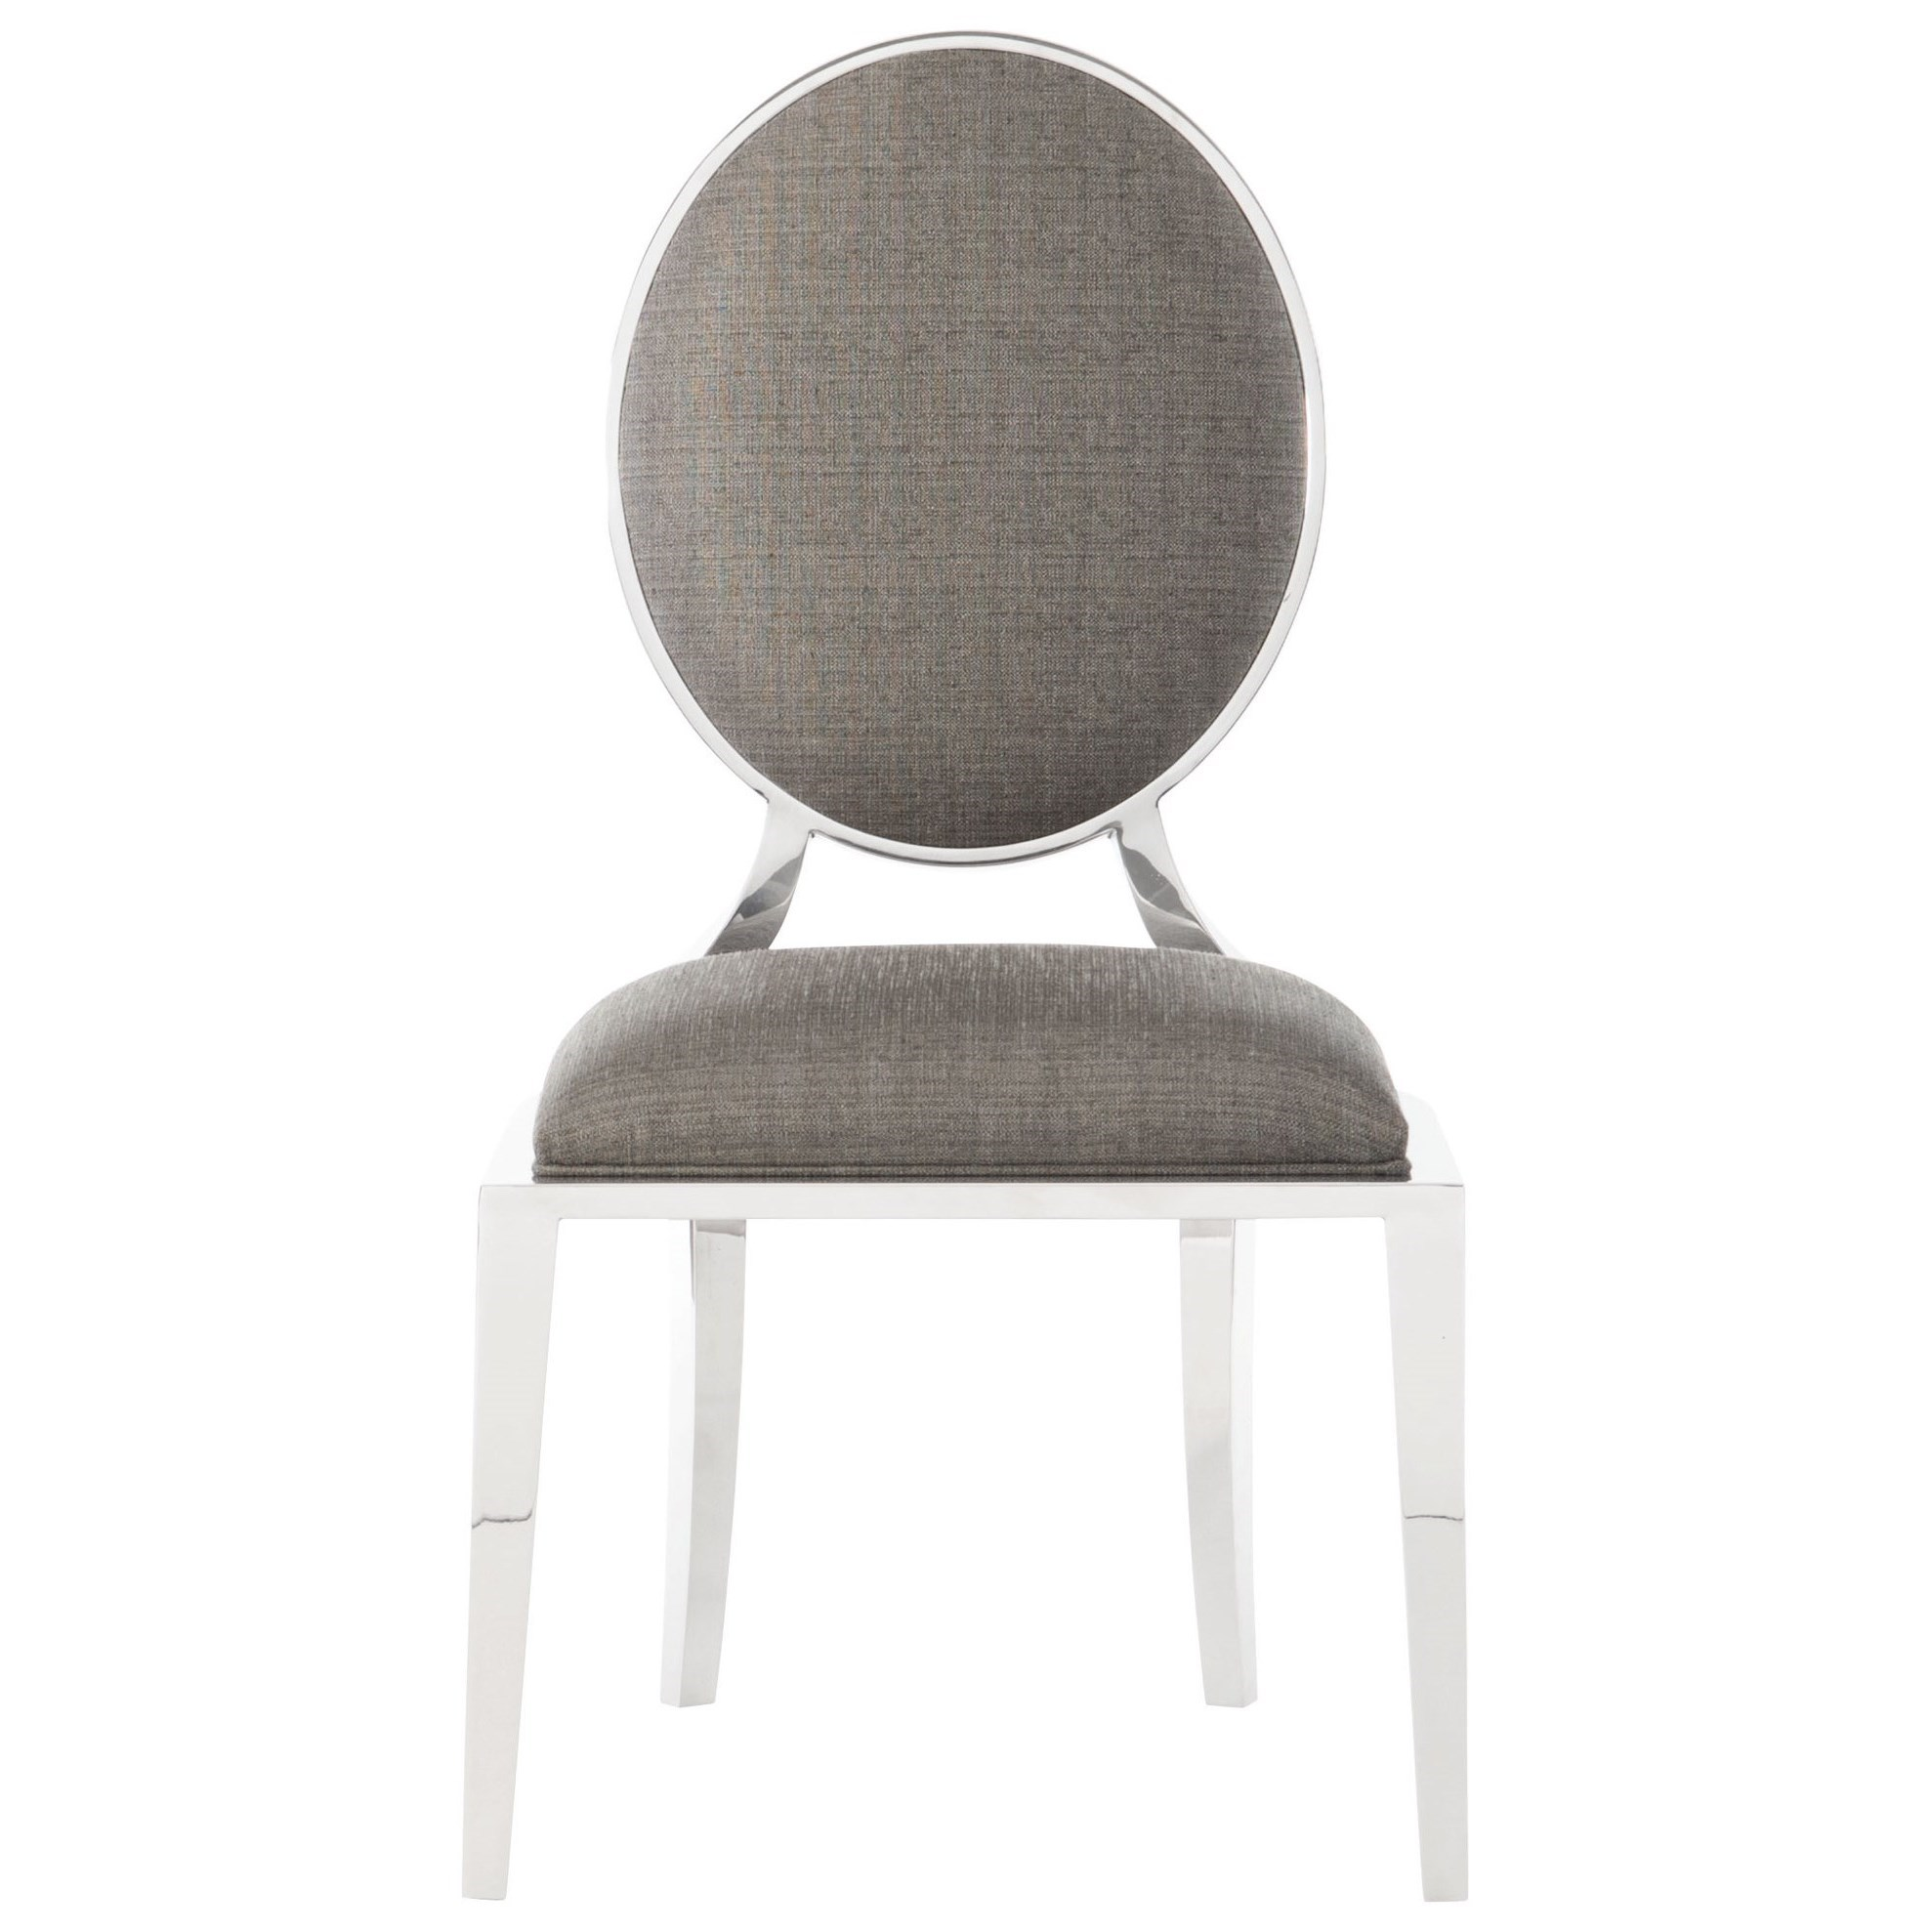 Interiors - Percival Metal Side Chair by Bernhardt at Fisher Home Furnishings